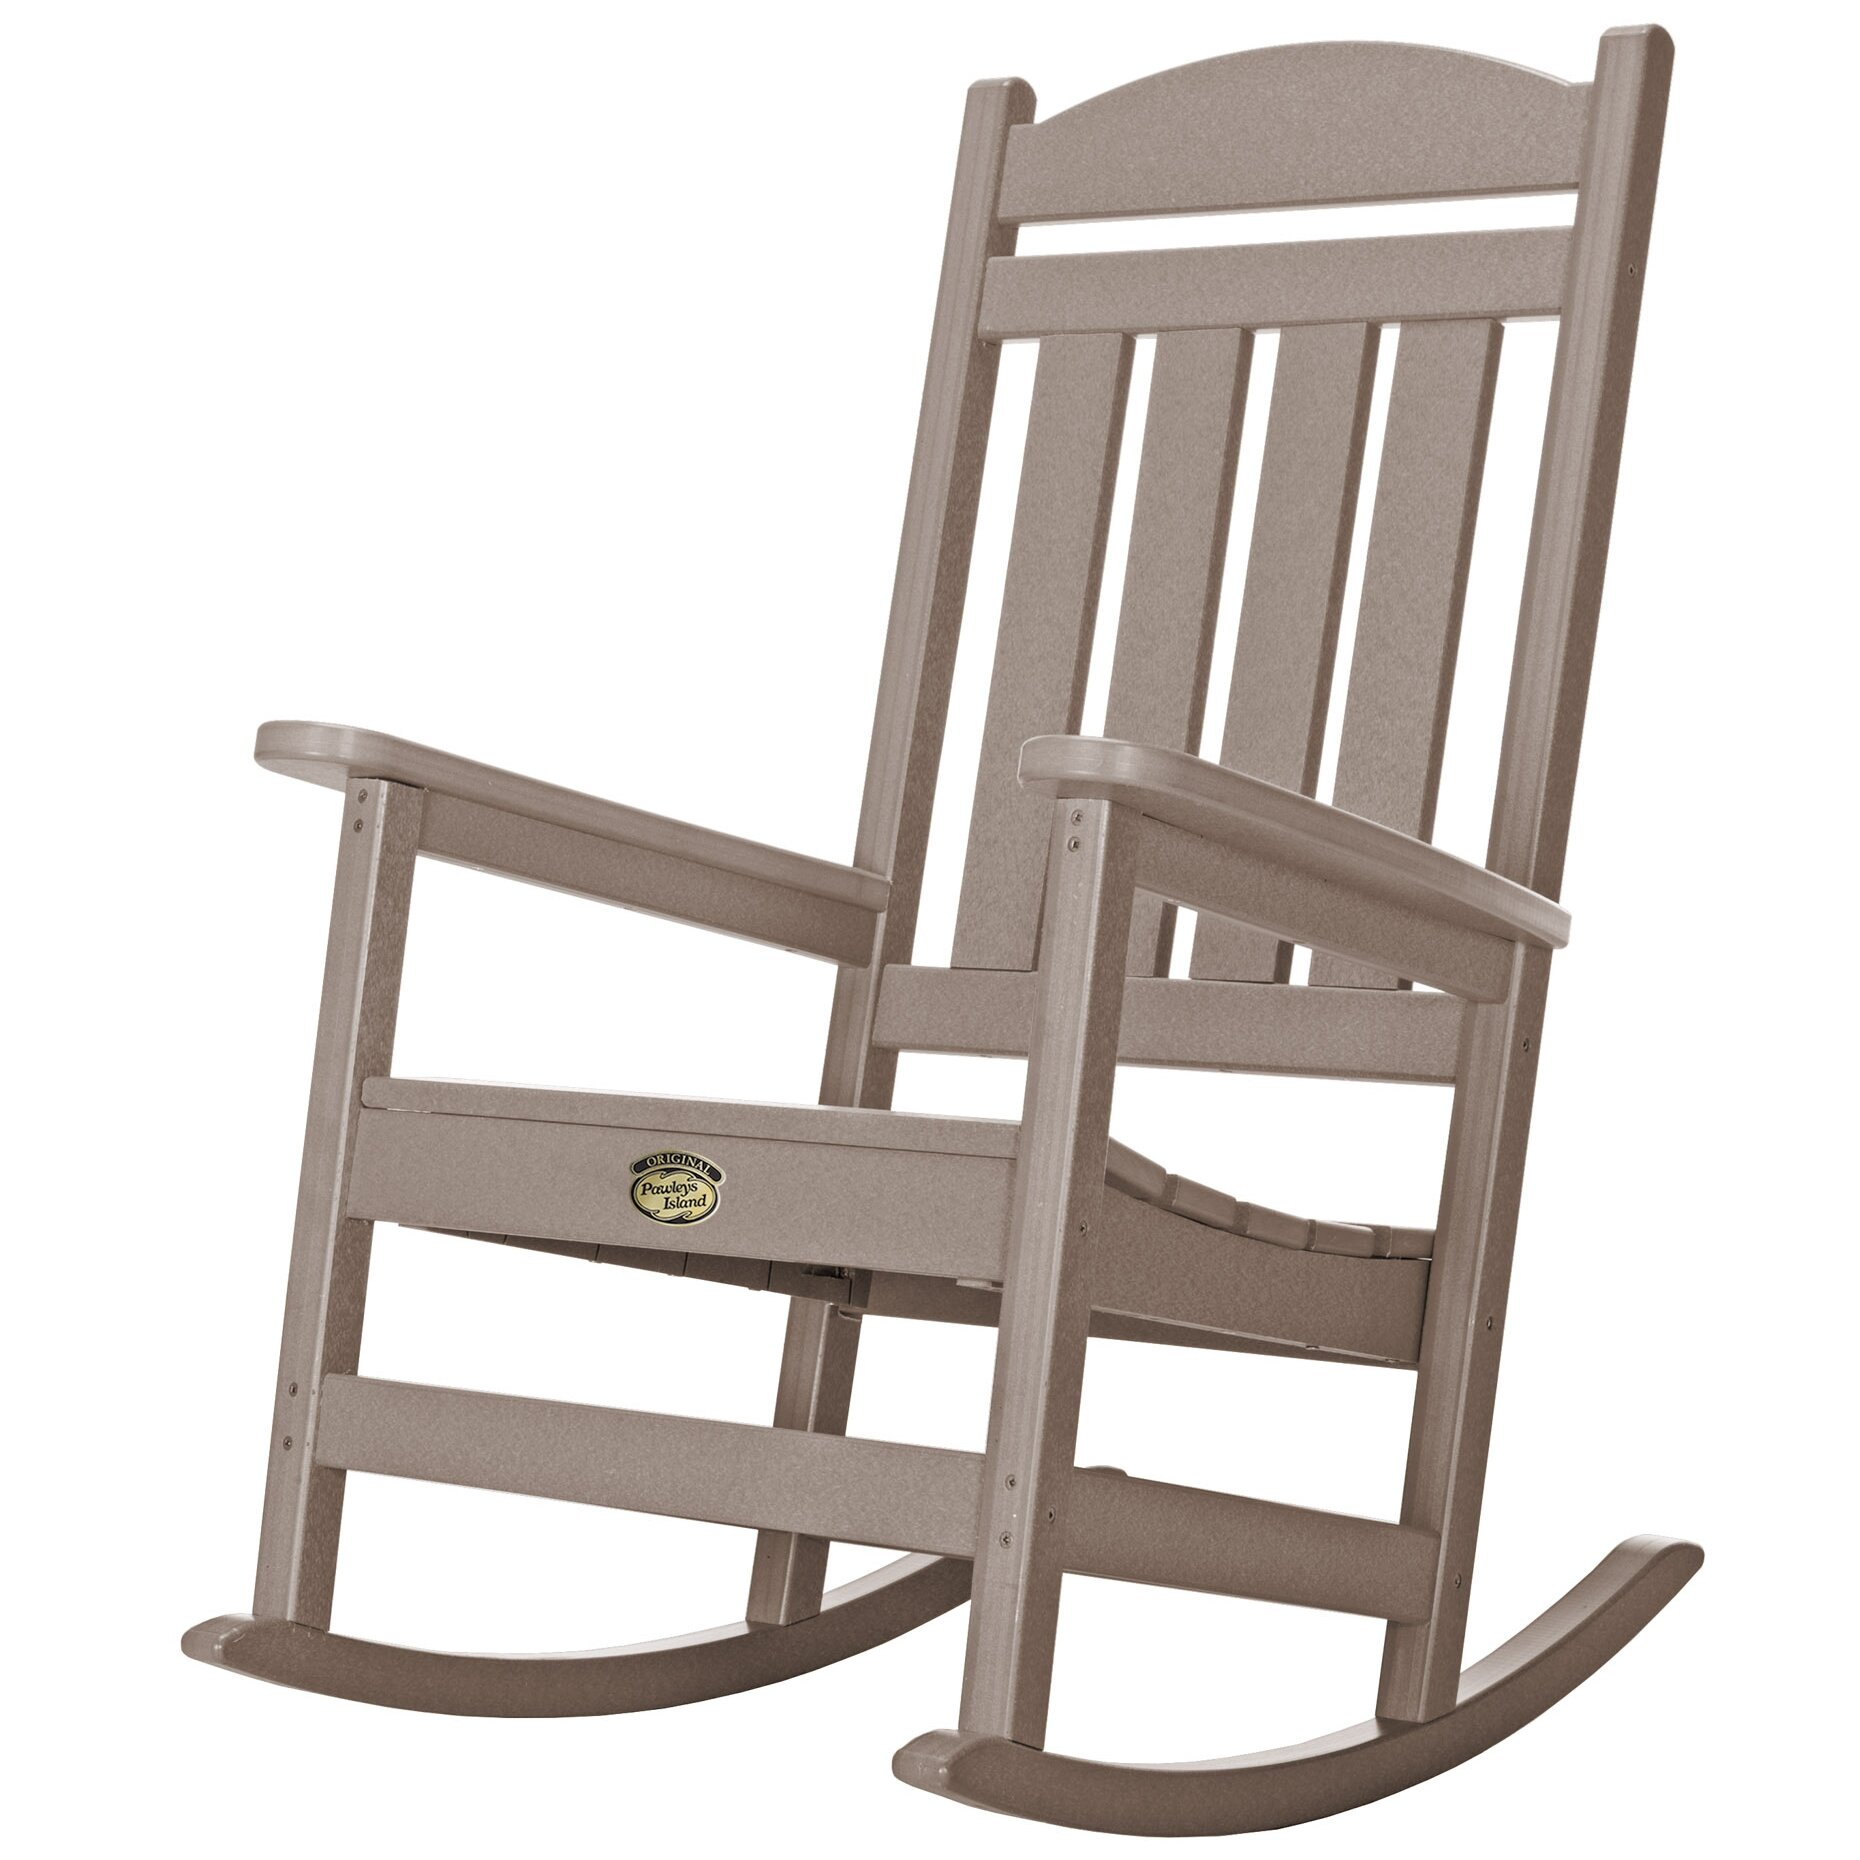 Pawleys island pawleys island porch rocking chair for Rocking chairs for porch